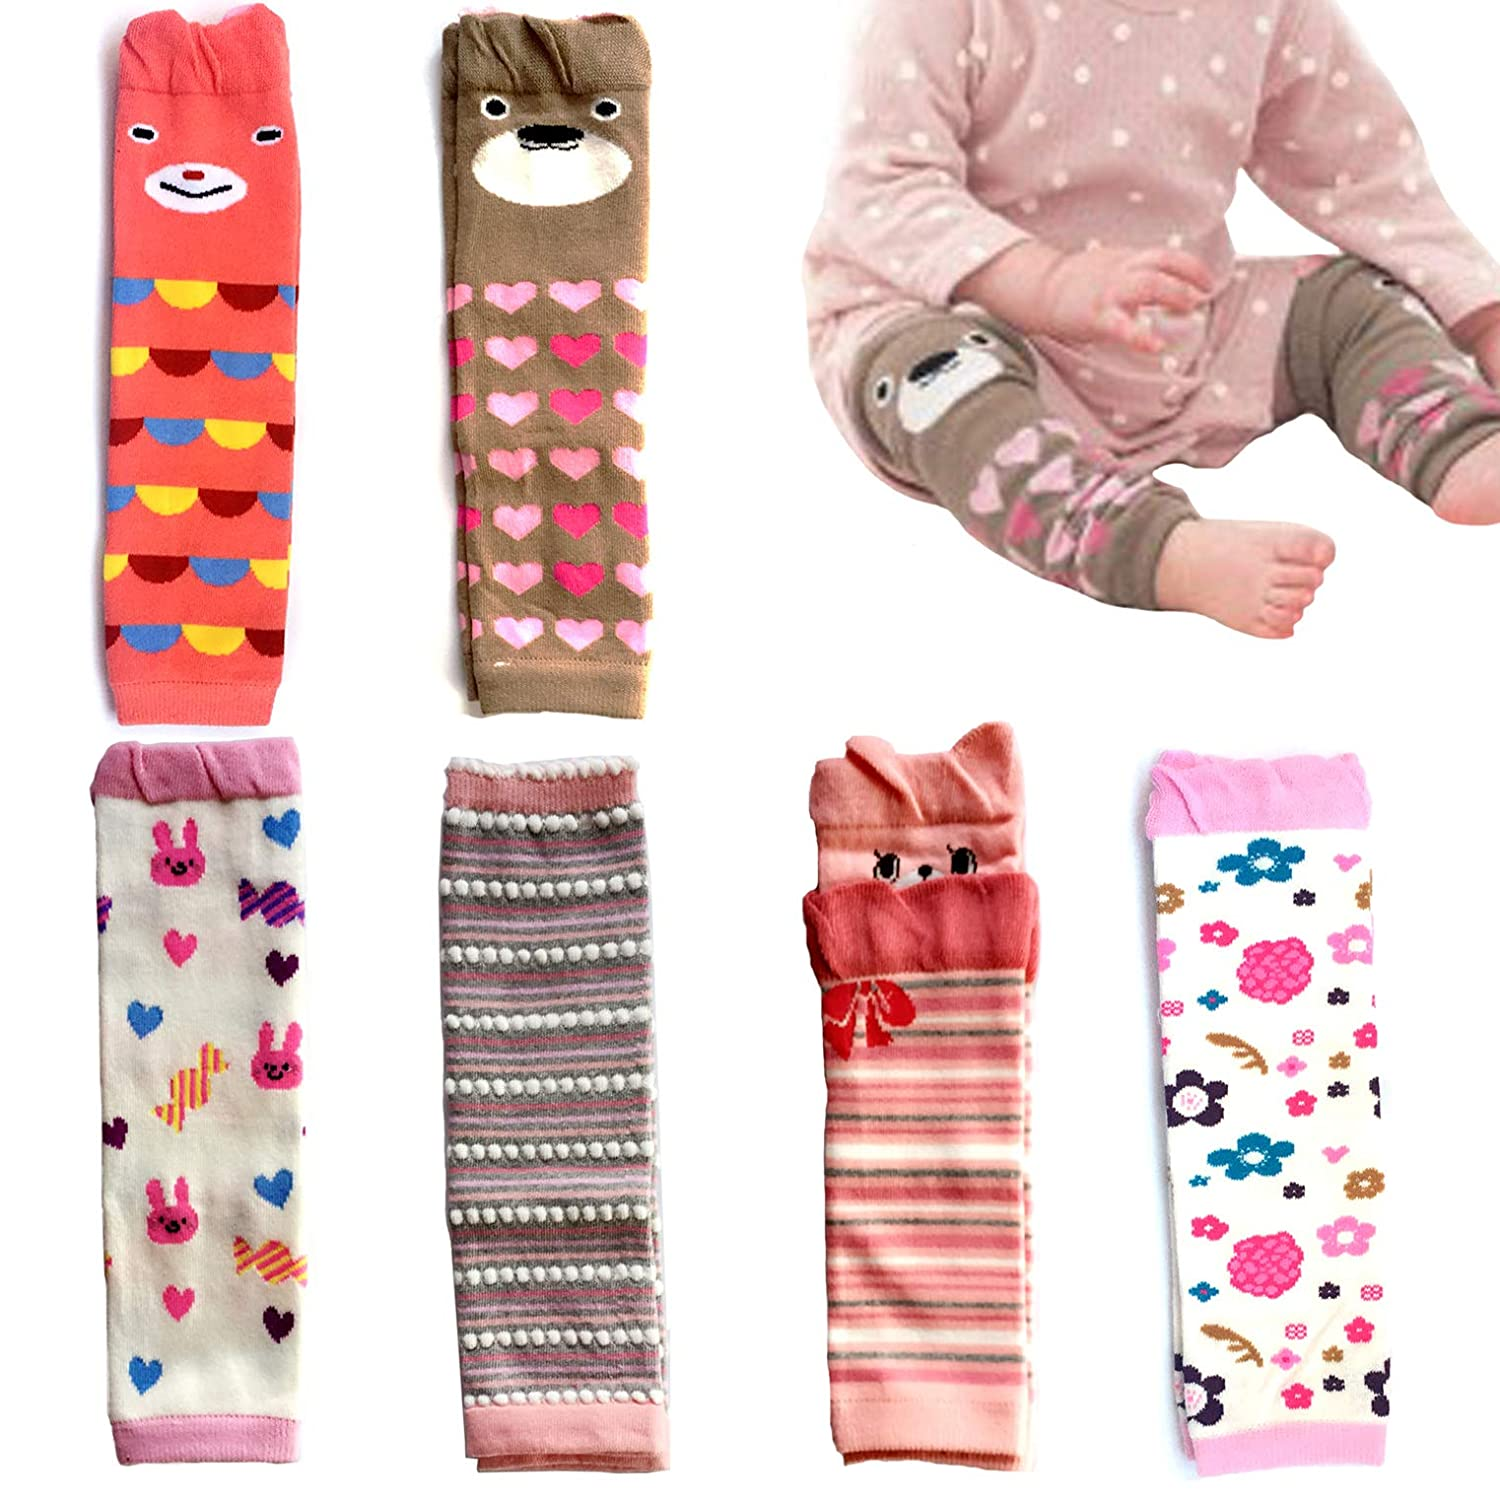 Stripes Pink Heart-shaped Dots Elesa Miracle 6-pack Baby /& Toddler Cozy Soft Leg Warmers Gift Set for Boys /& Girls